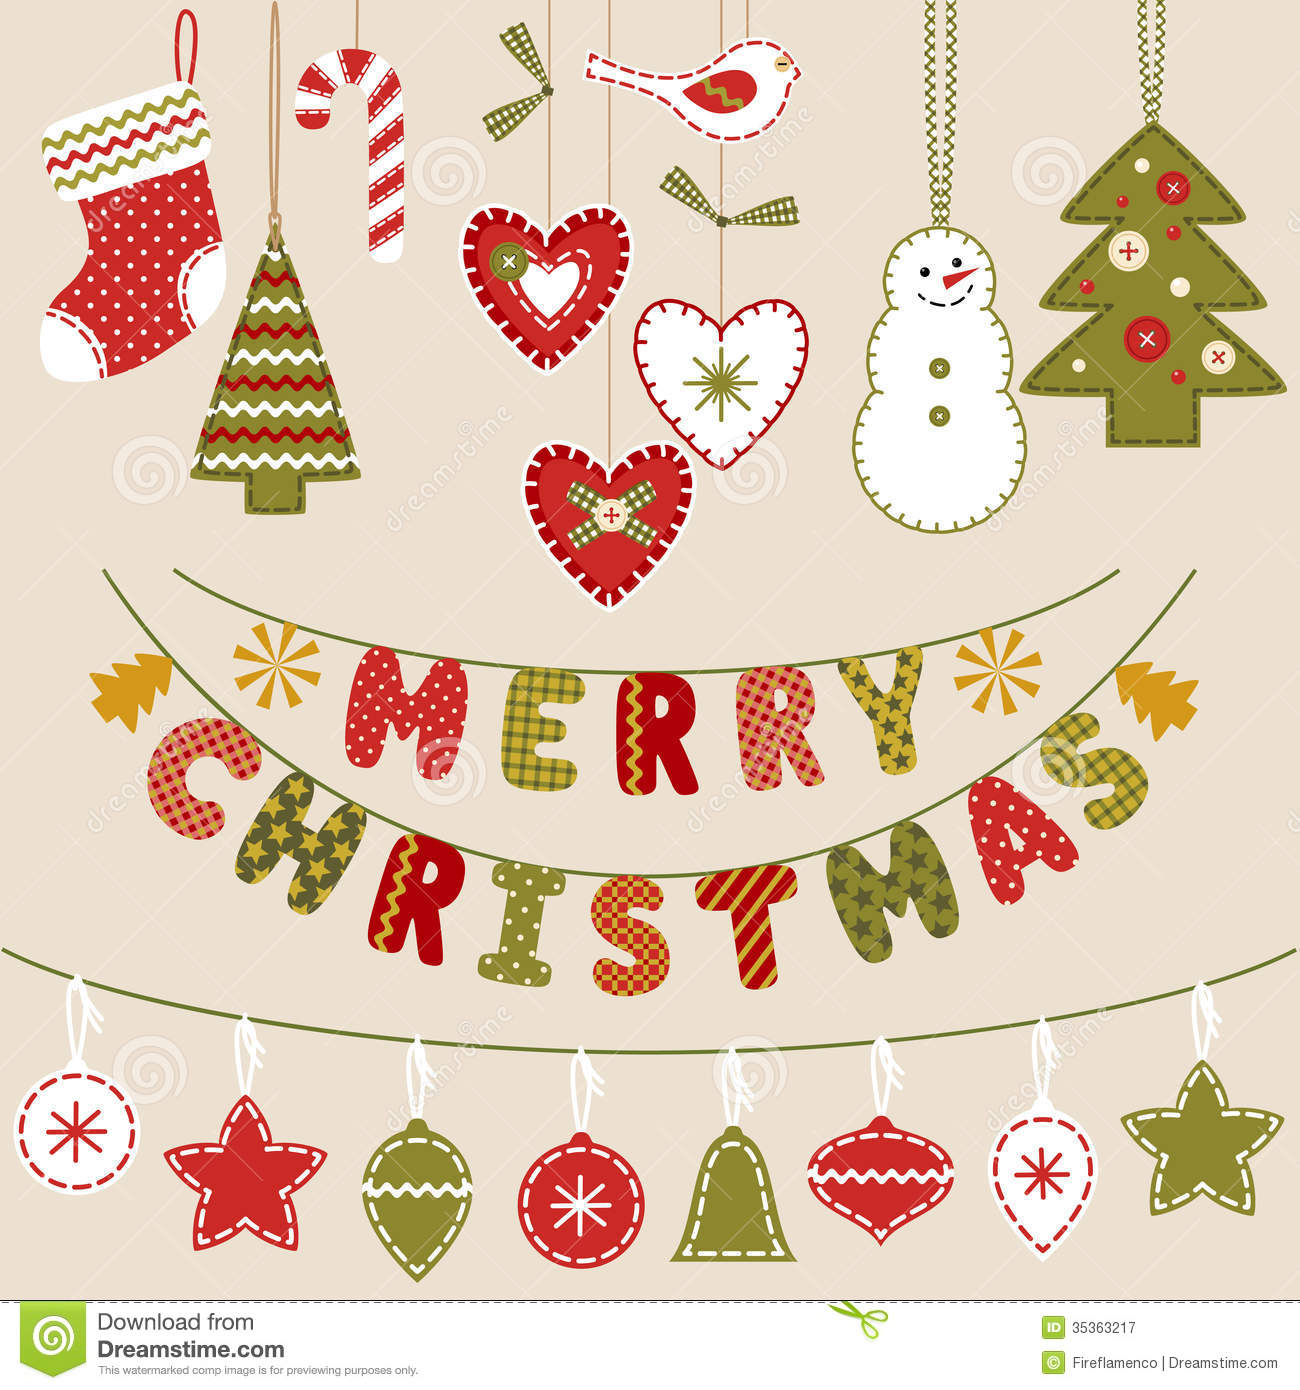 Handmade Christmas Decoration Royalty Free Stock Photography ...